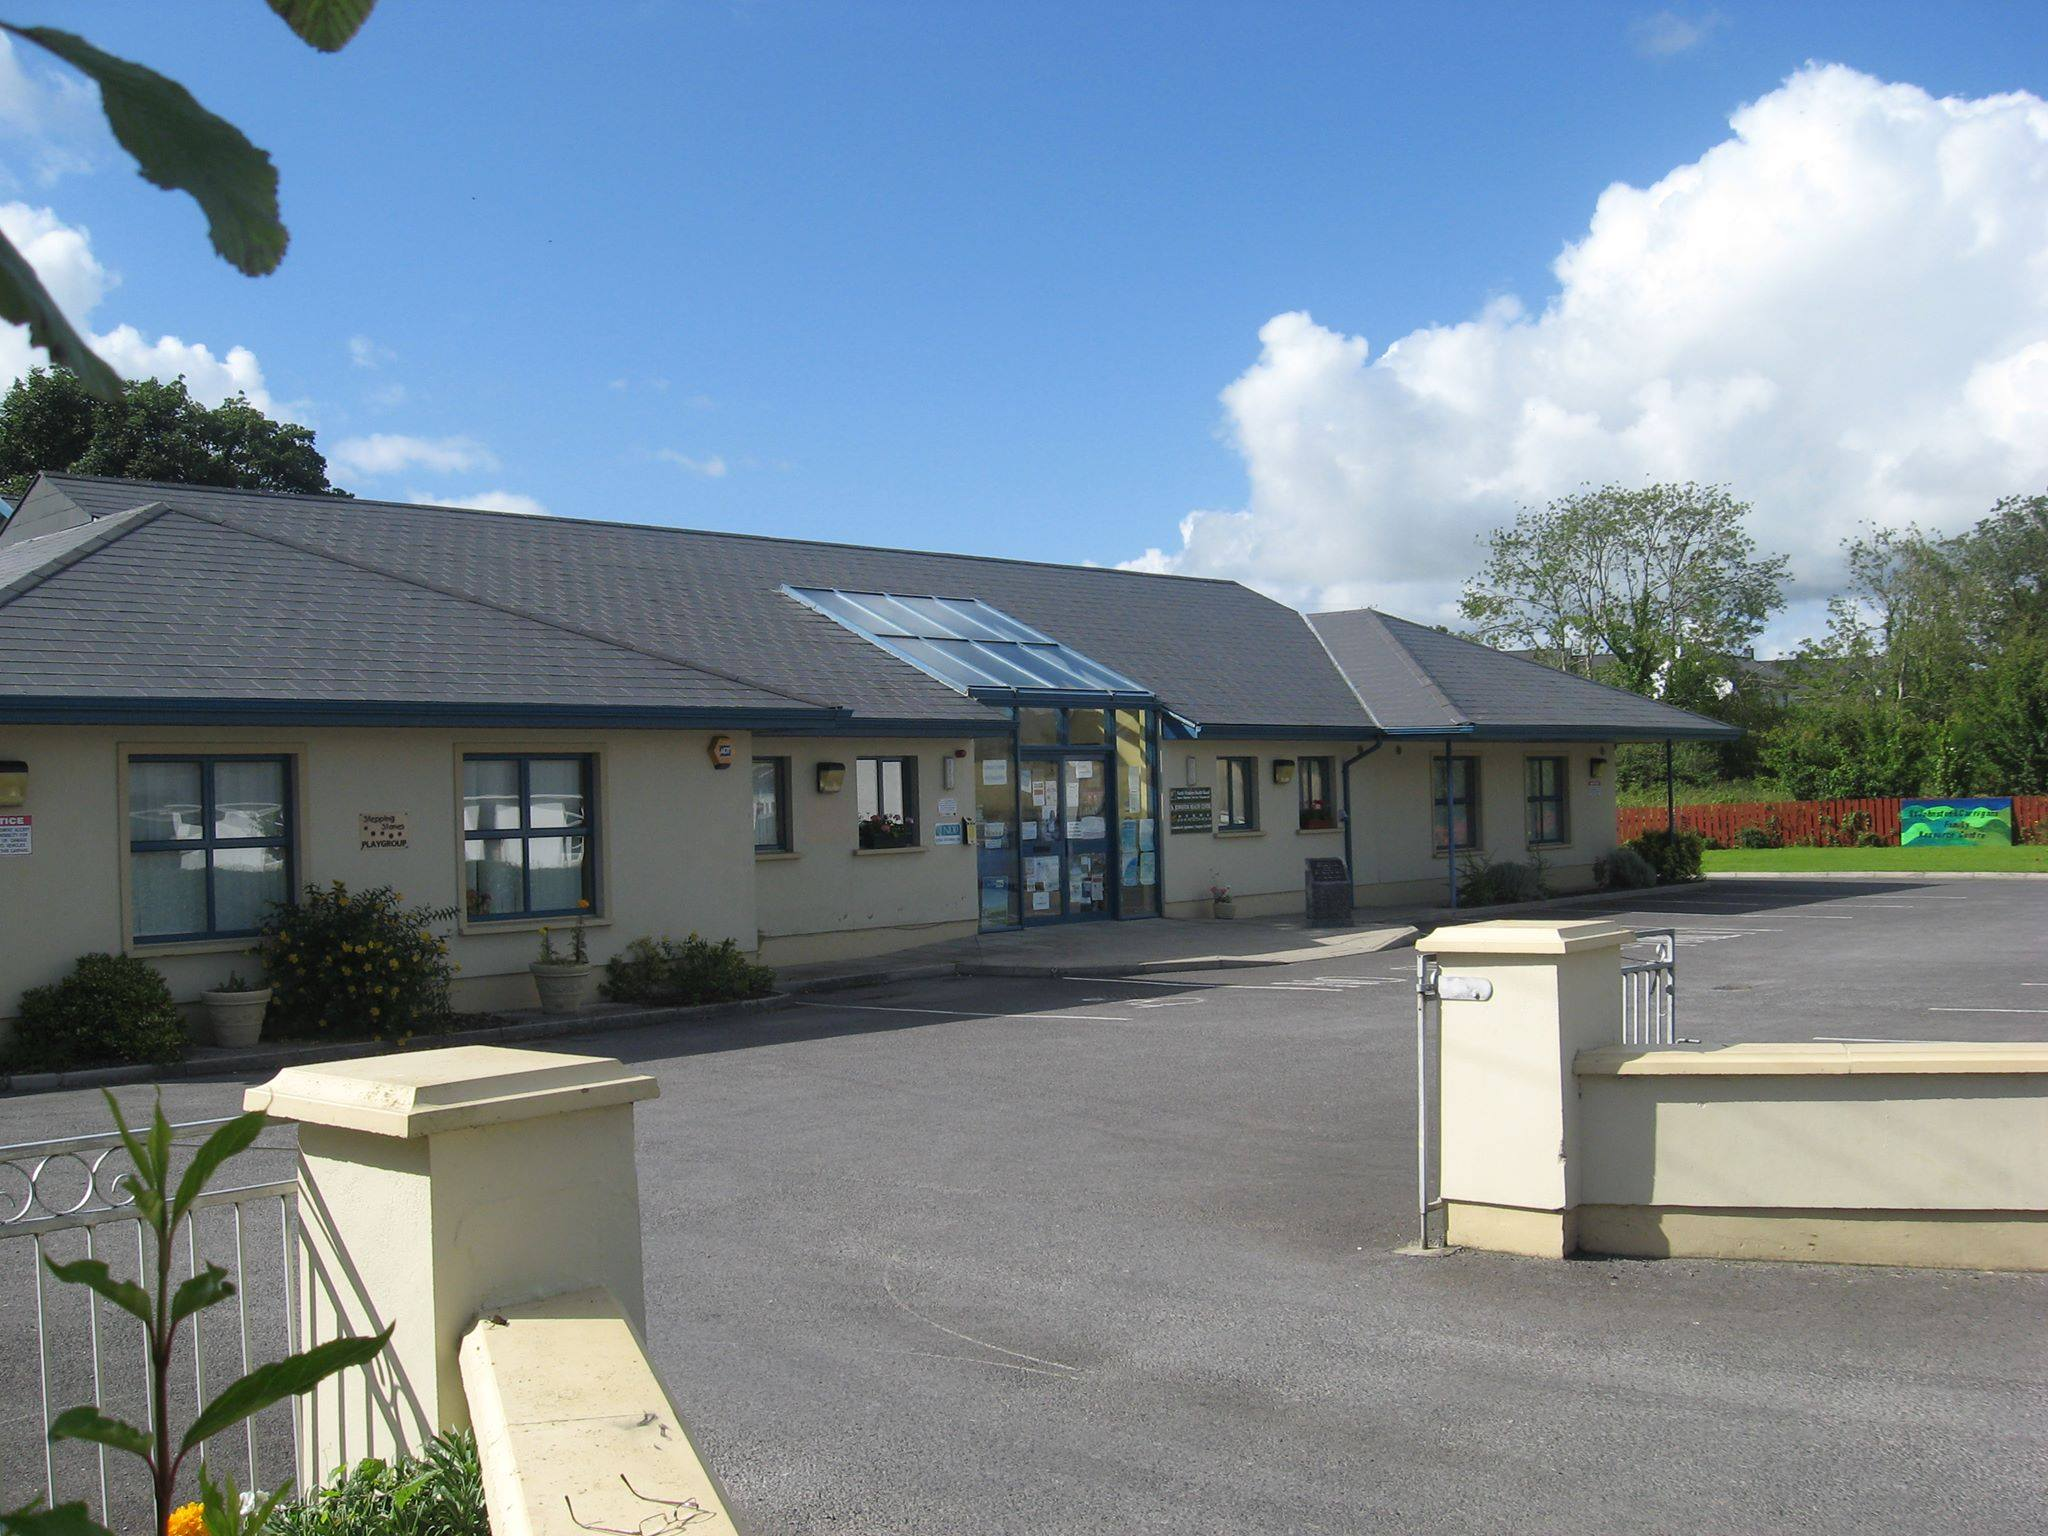 St Johnston and Carrigans Family Resource Centre